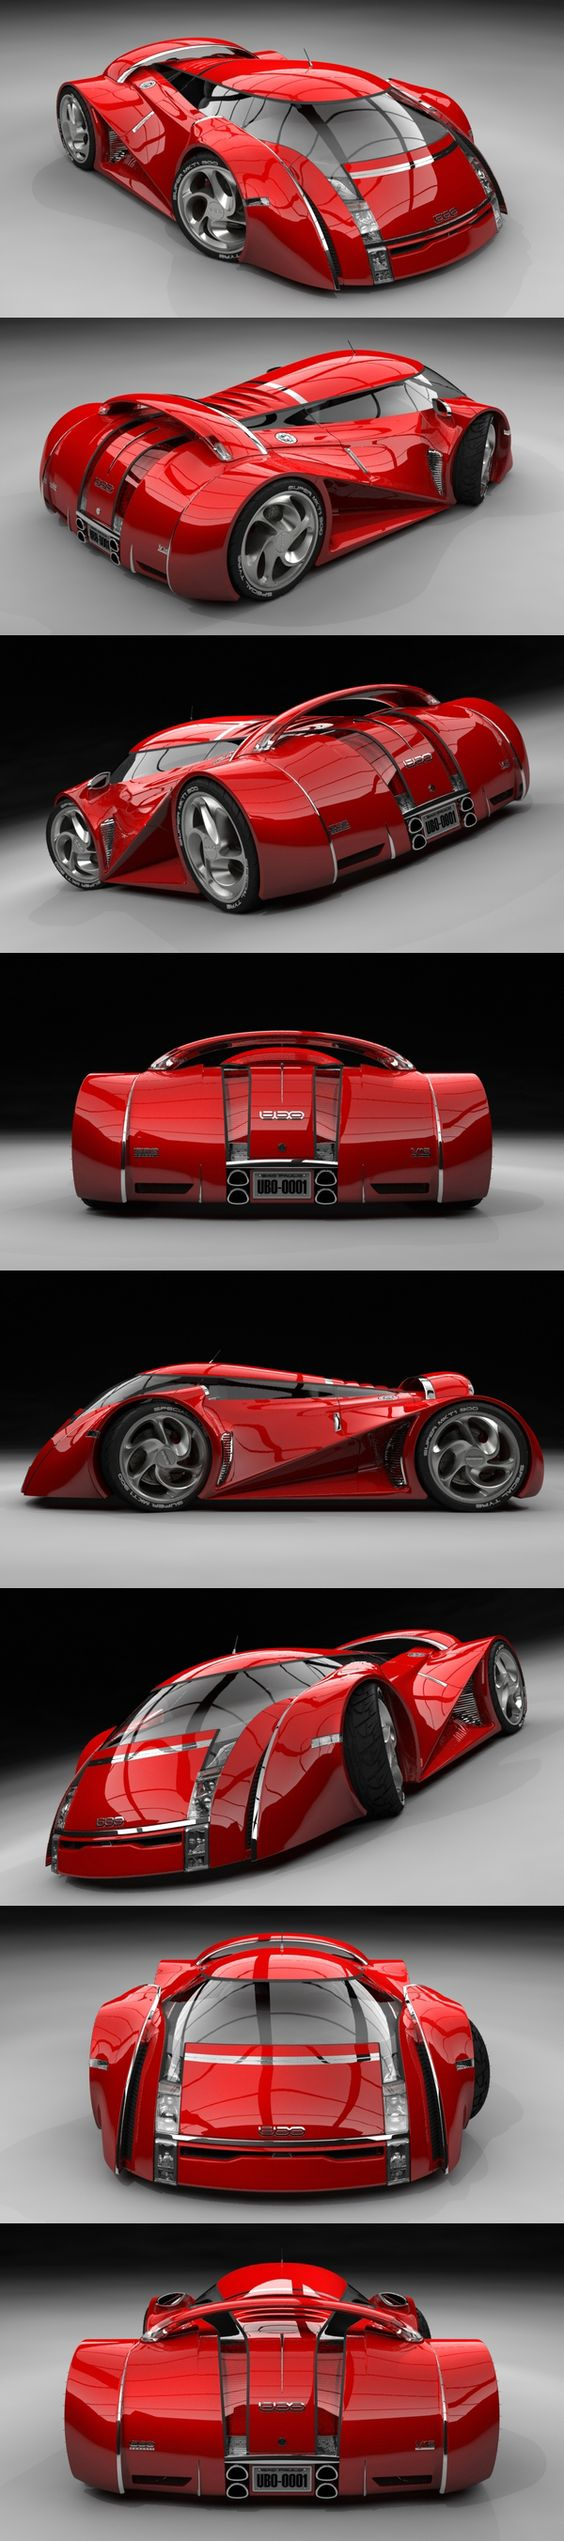 Awesome Cars '' UBO - Concept Car '' Cars Design And Concepts, Best Of New Cars